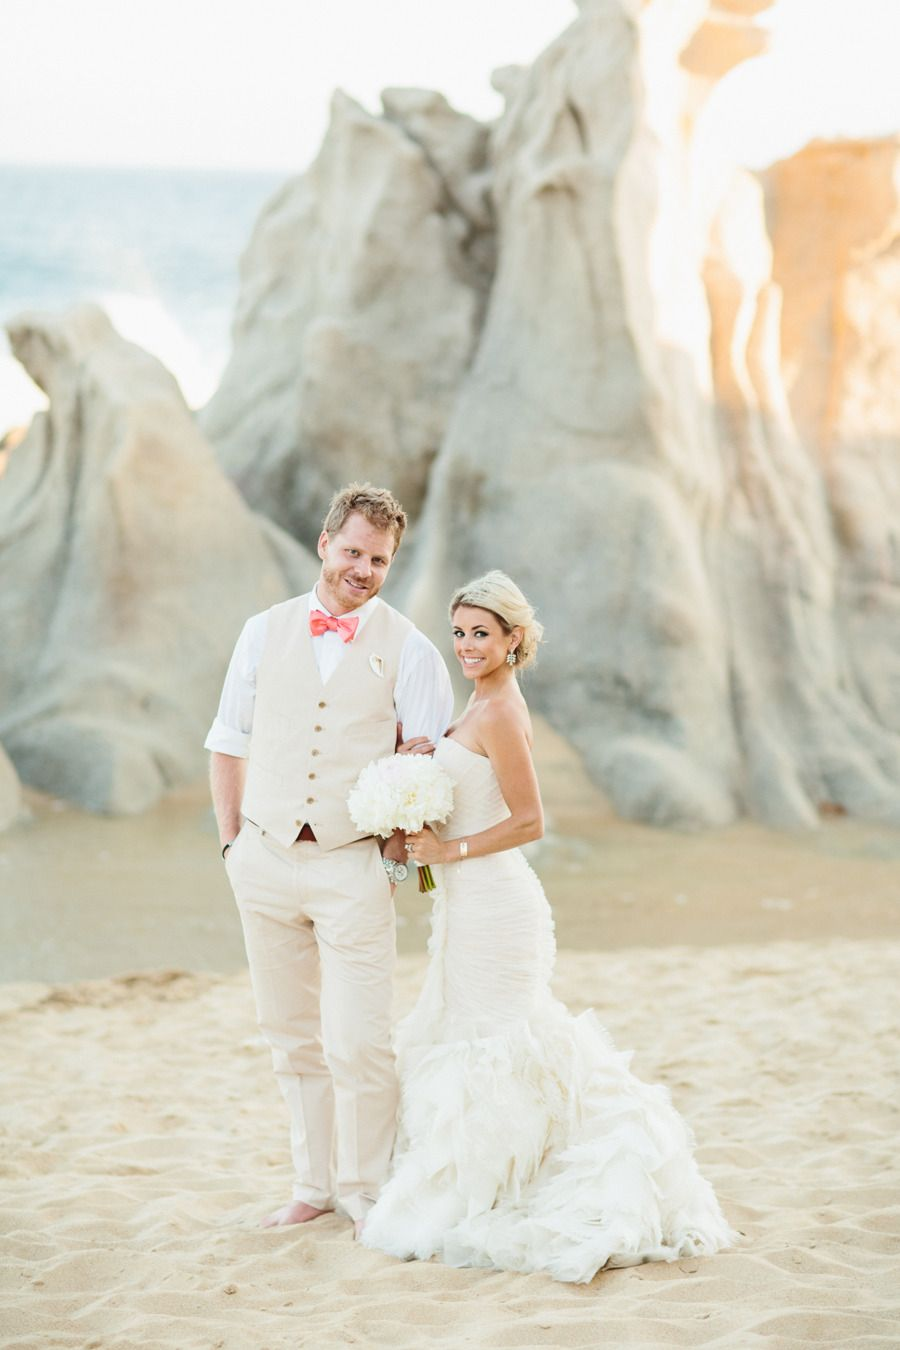 Tropical cabo san lucas beach wedding read more pictures and